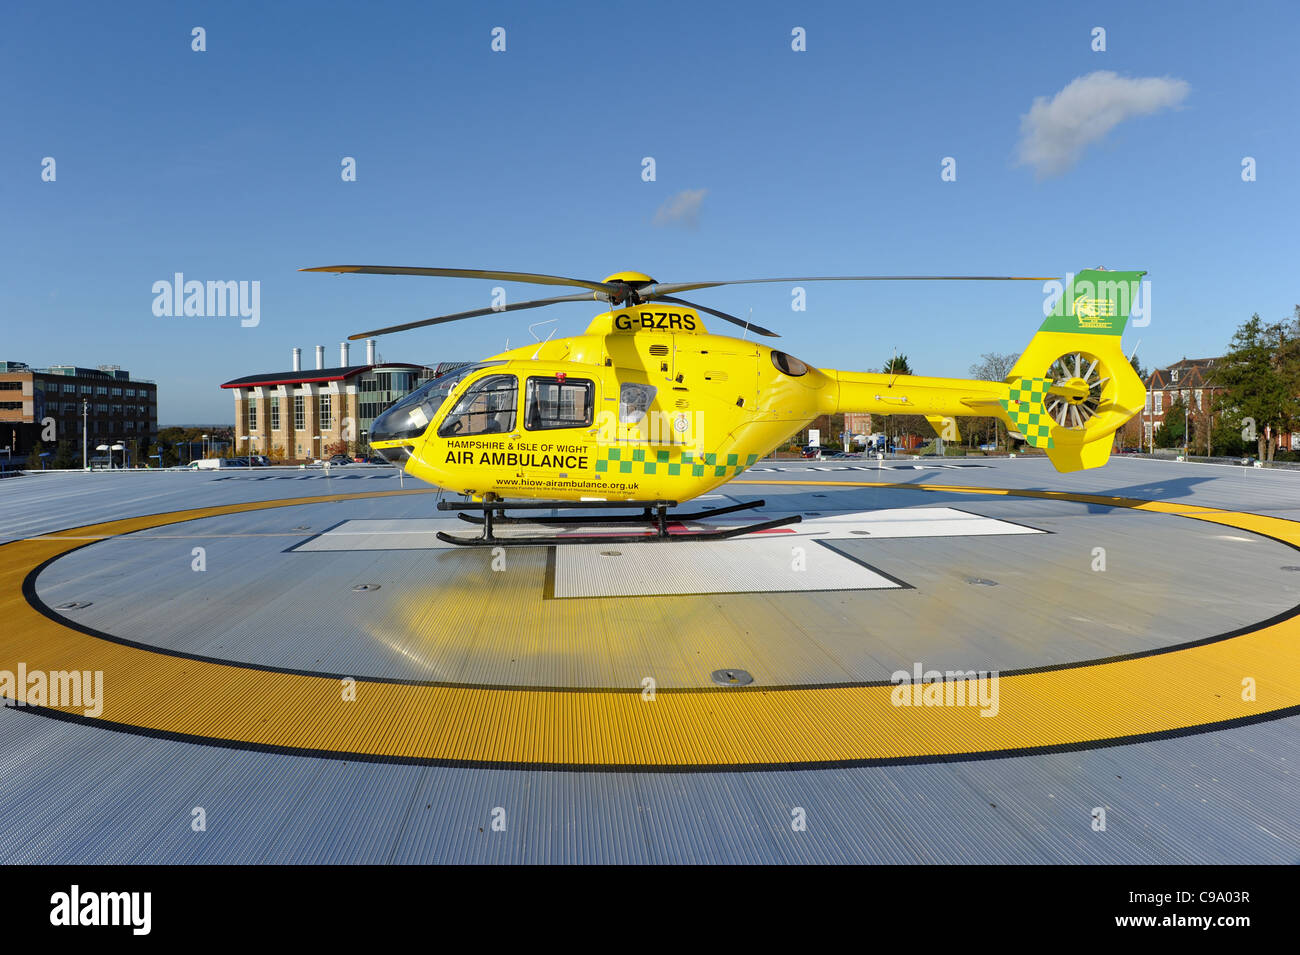 air ambulance of the hampshire and isle of wight sit on the helicopter landing pad of the southampton general hospital - Stock Image